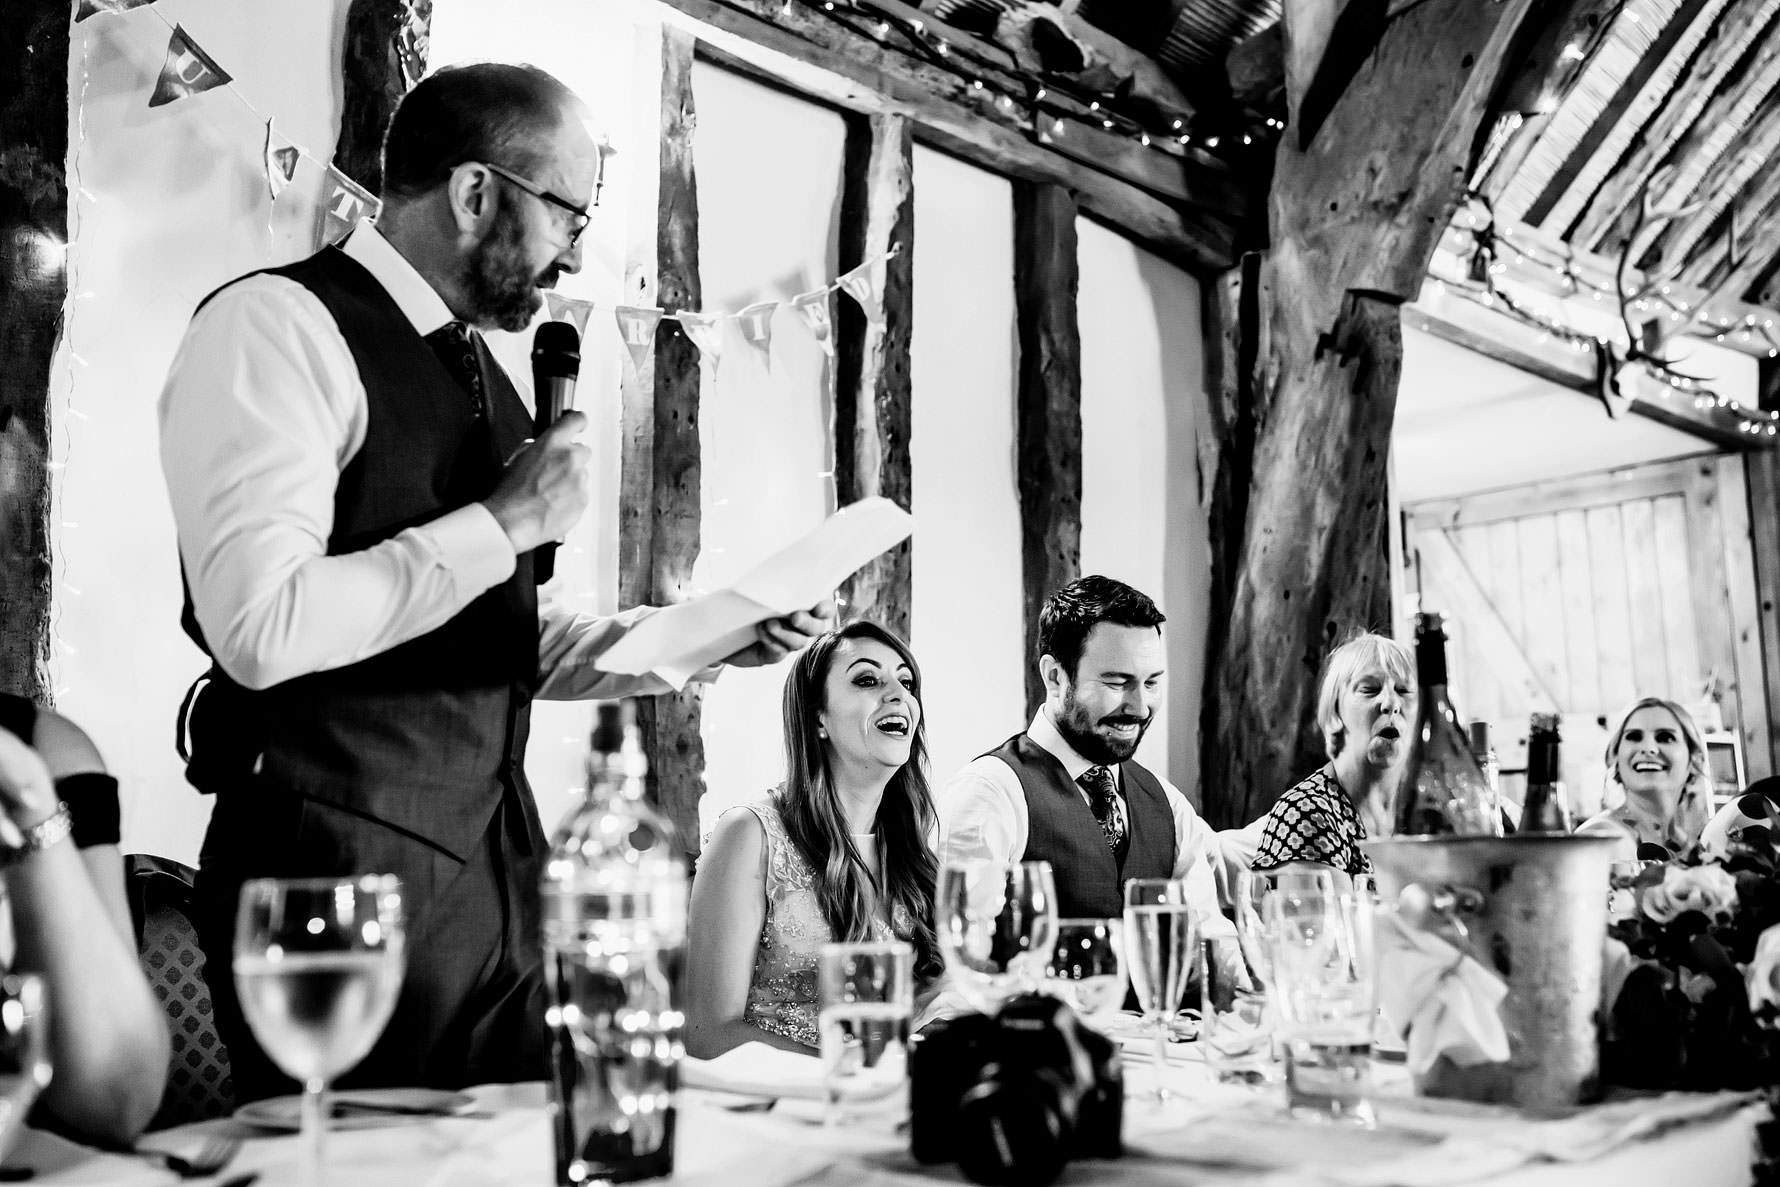 Notley Tythe Barn Wedding Photography by Elliot W Patching Photography